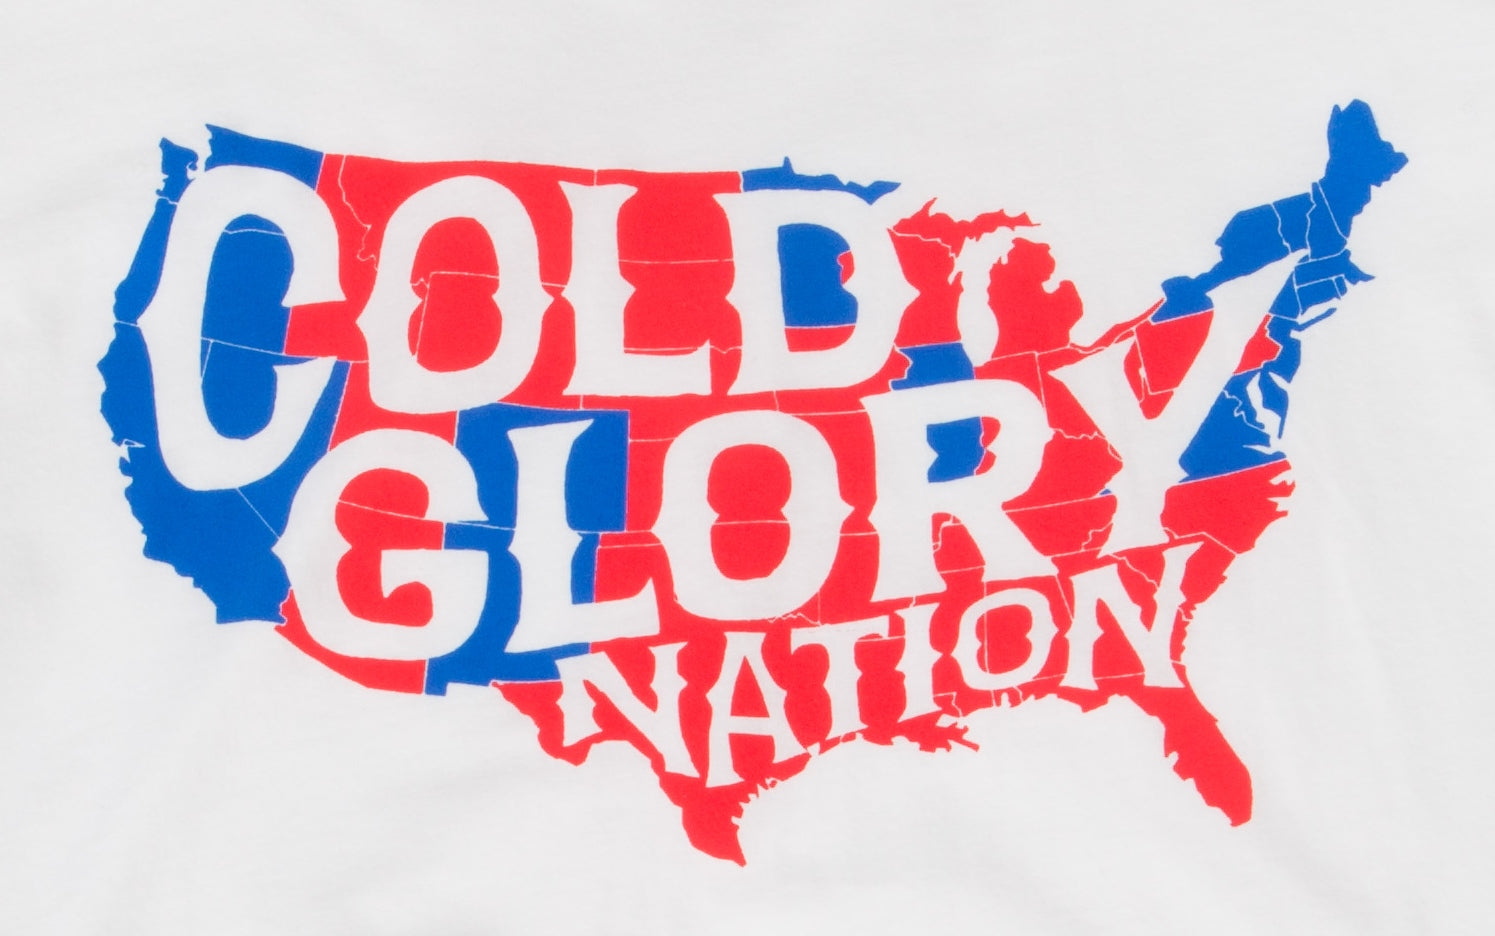 white t-shirt with usa map showing red states vs blue states of cold glory nation closeup